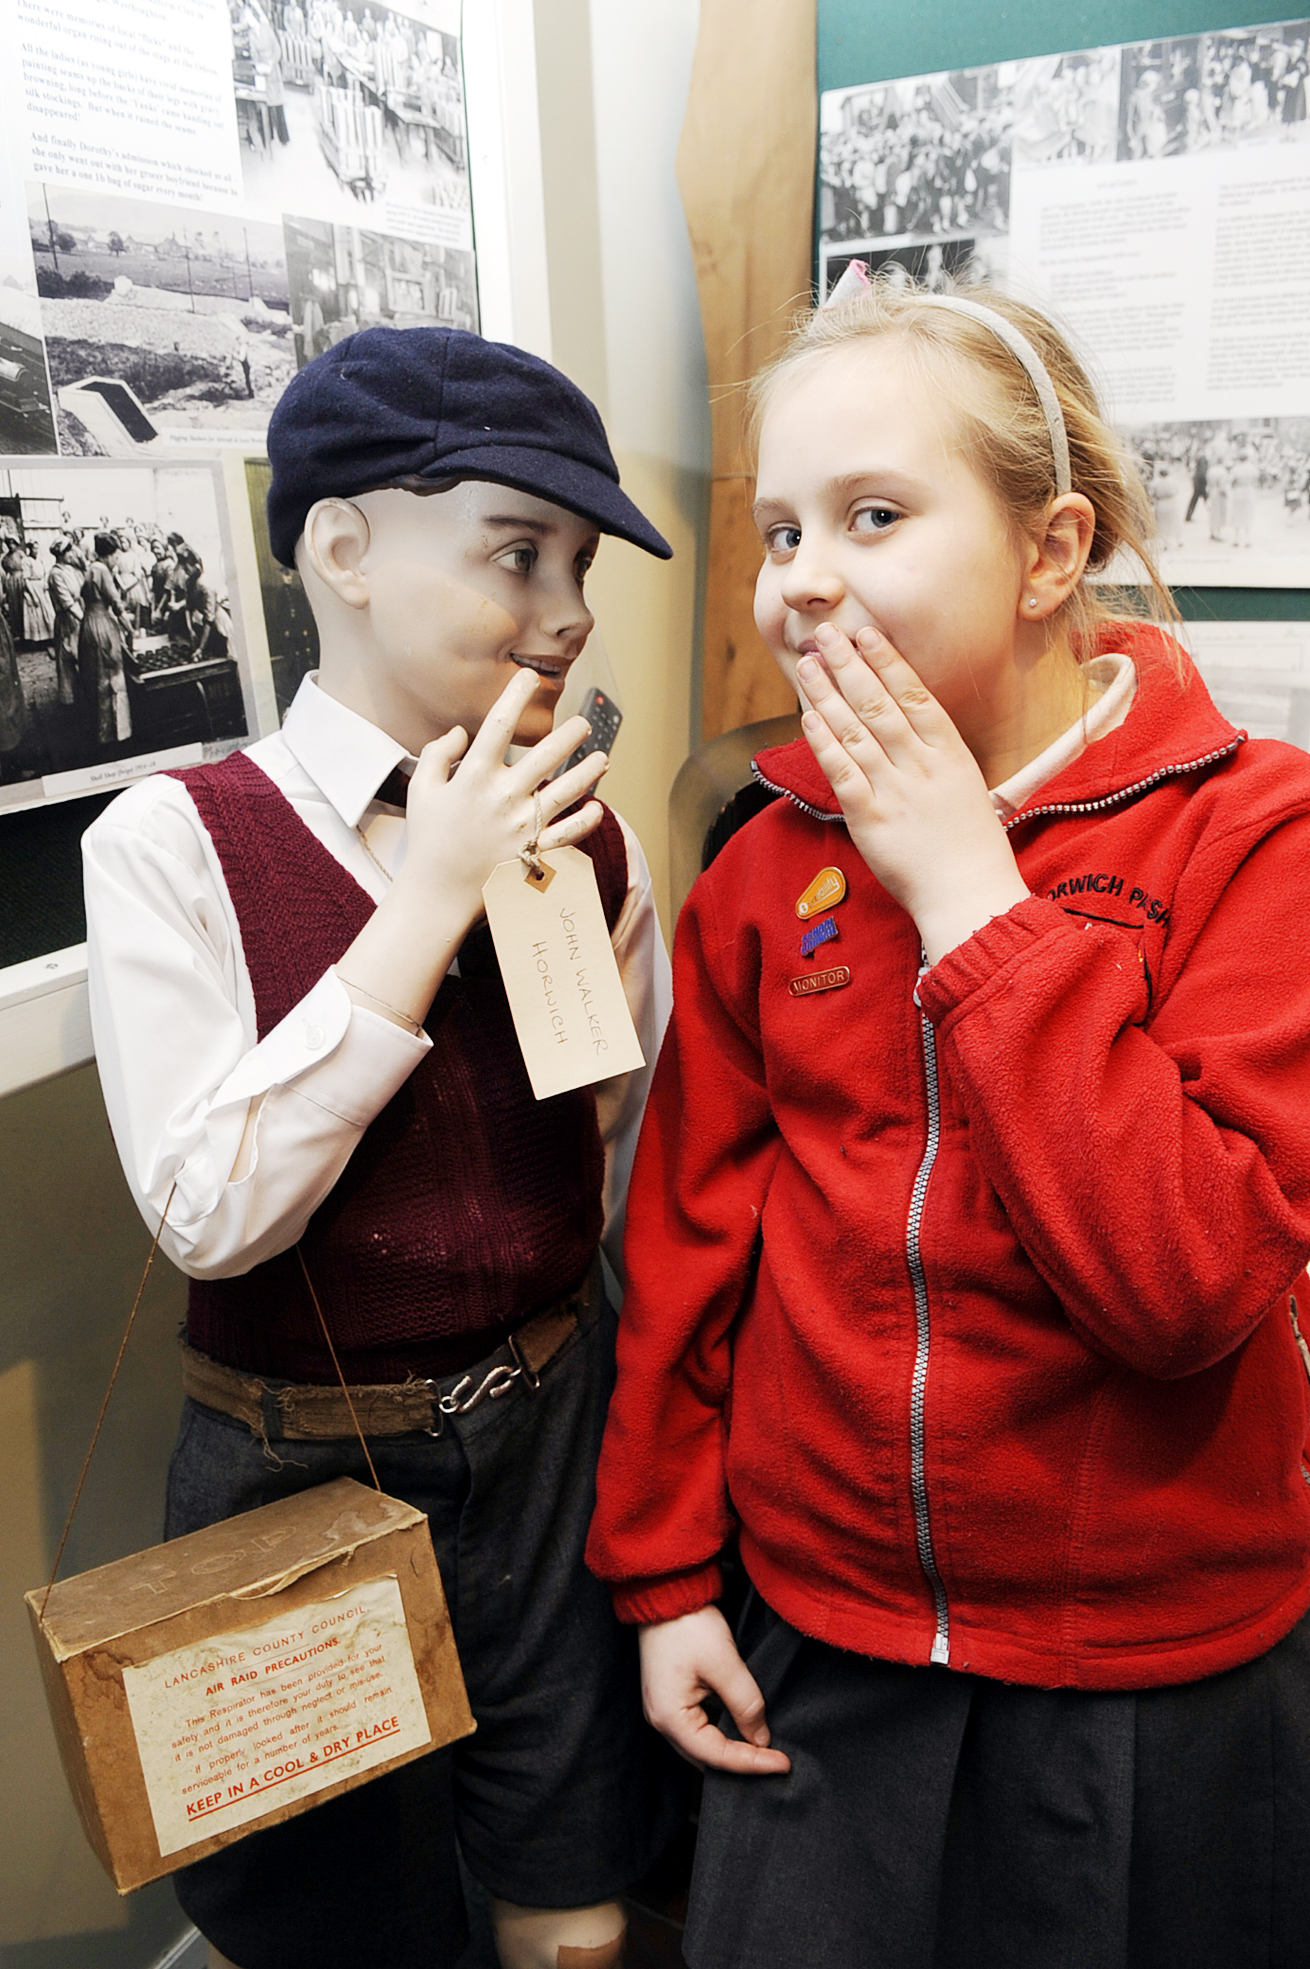 Horwich kids go back in time to discover town's history